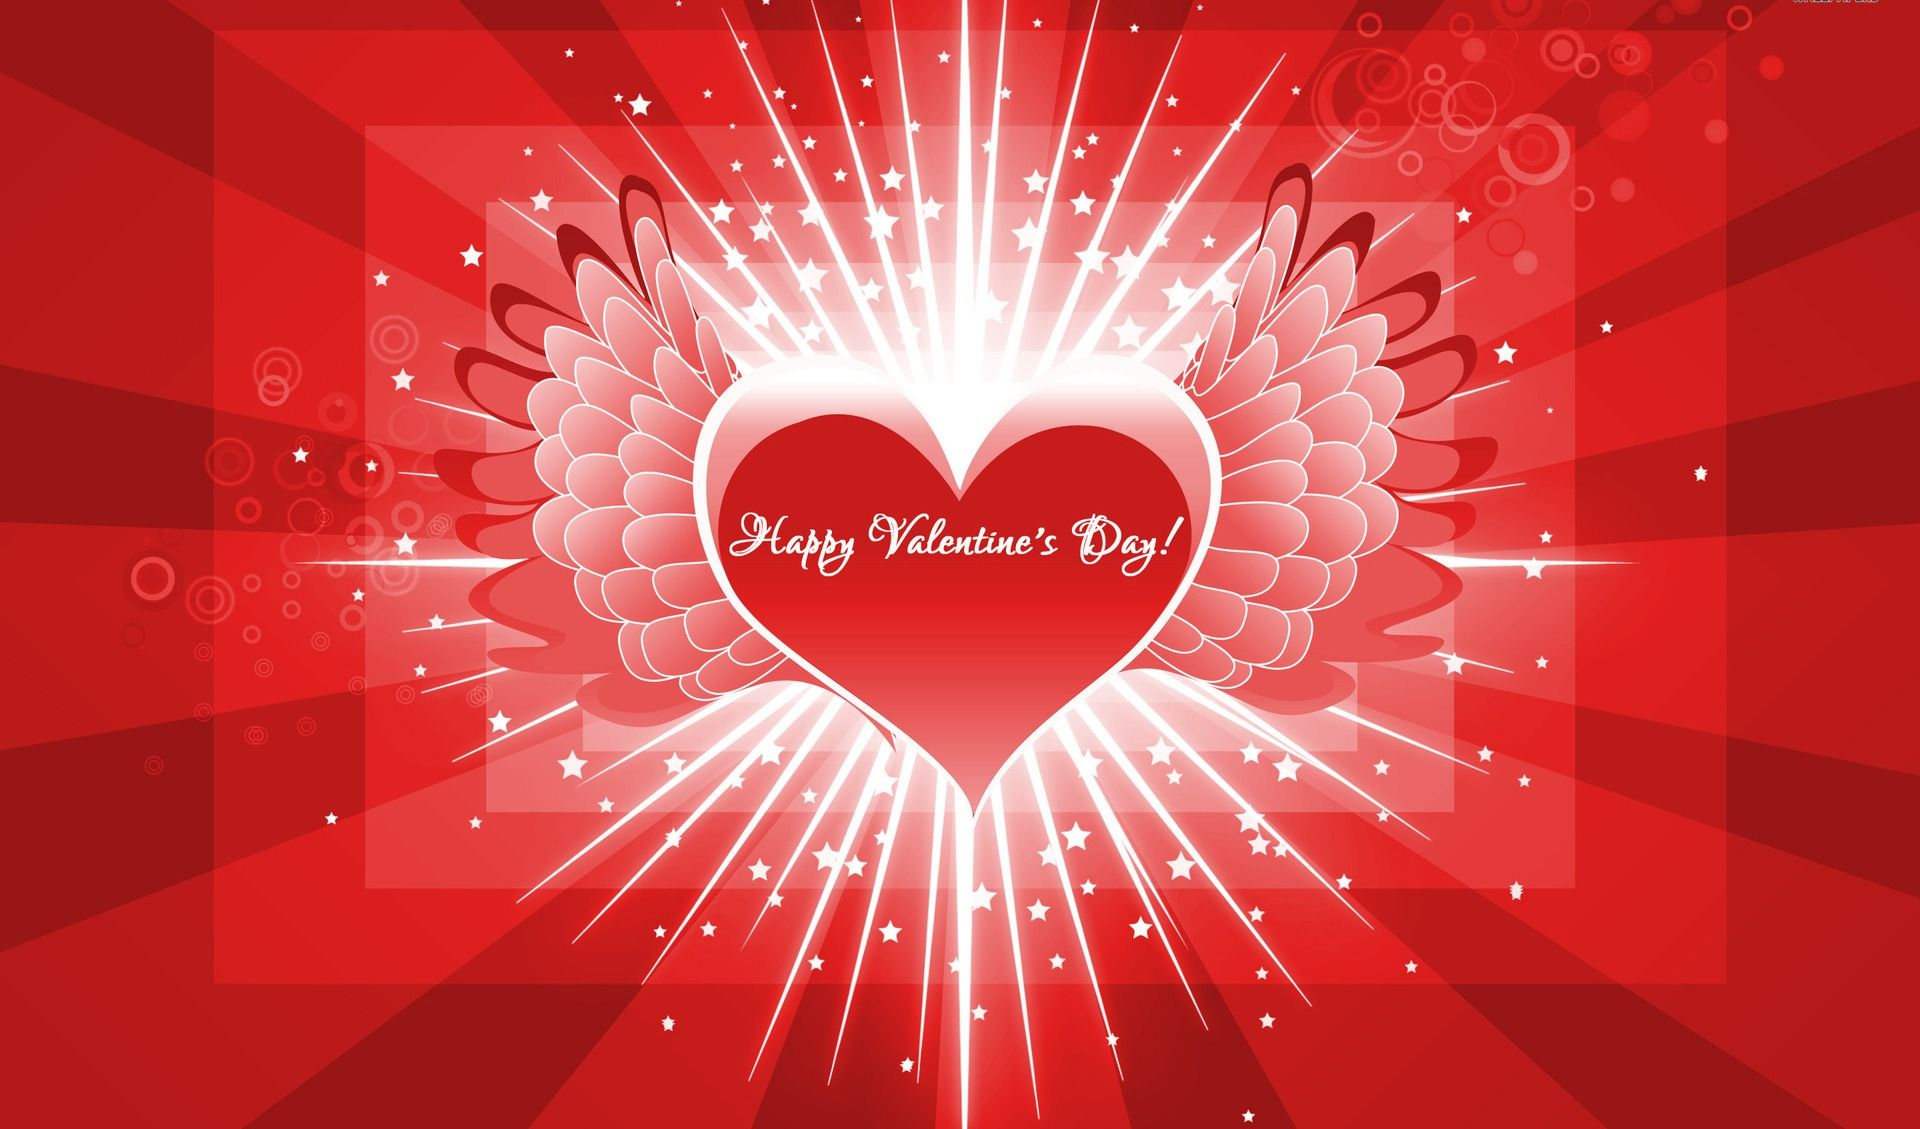 150 HD Valentine Day Wallpapers for Your GFBF arts Happy 1920x1129